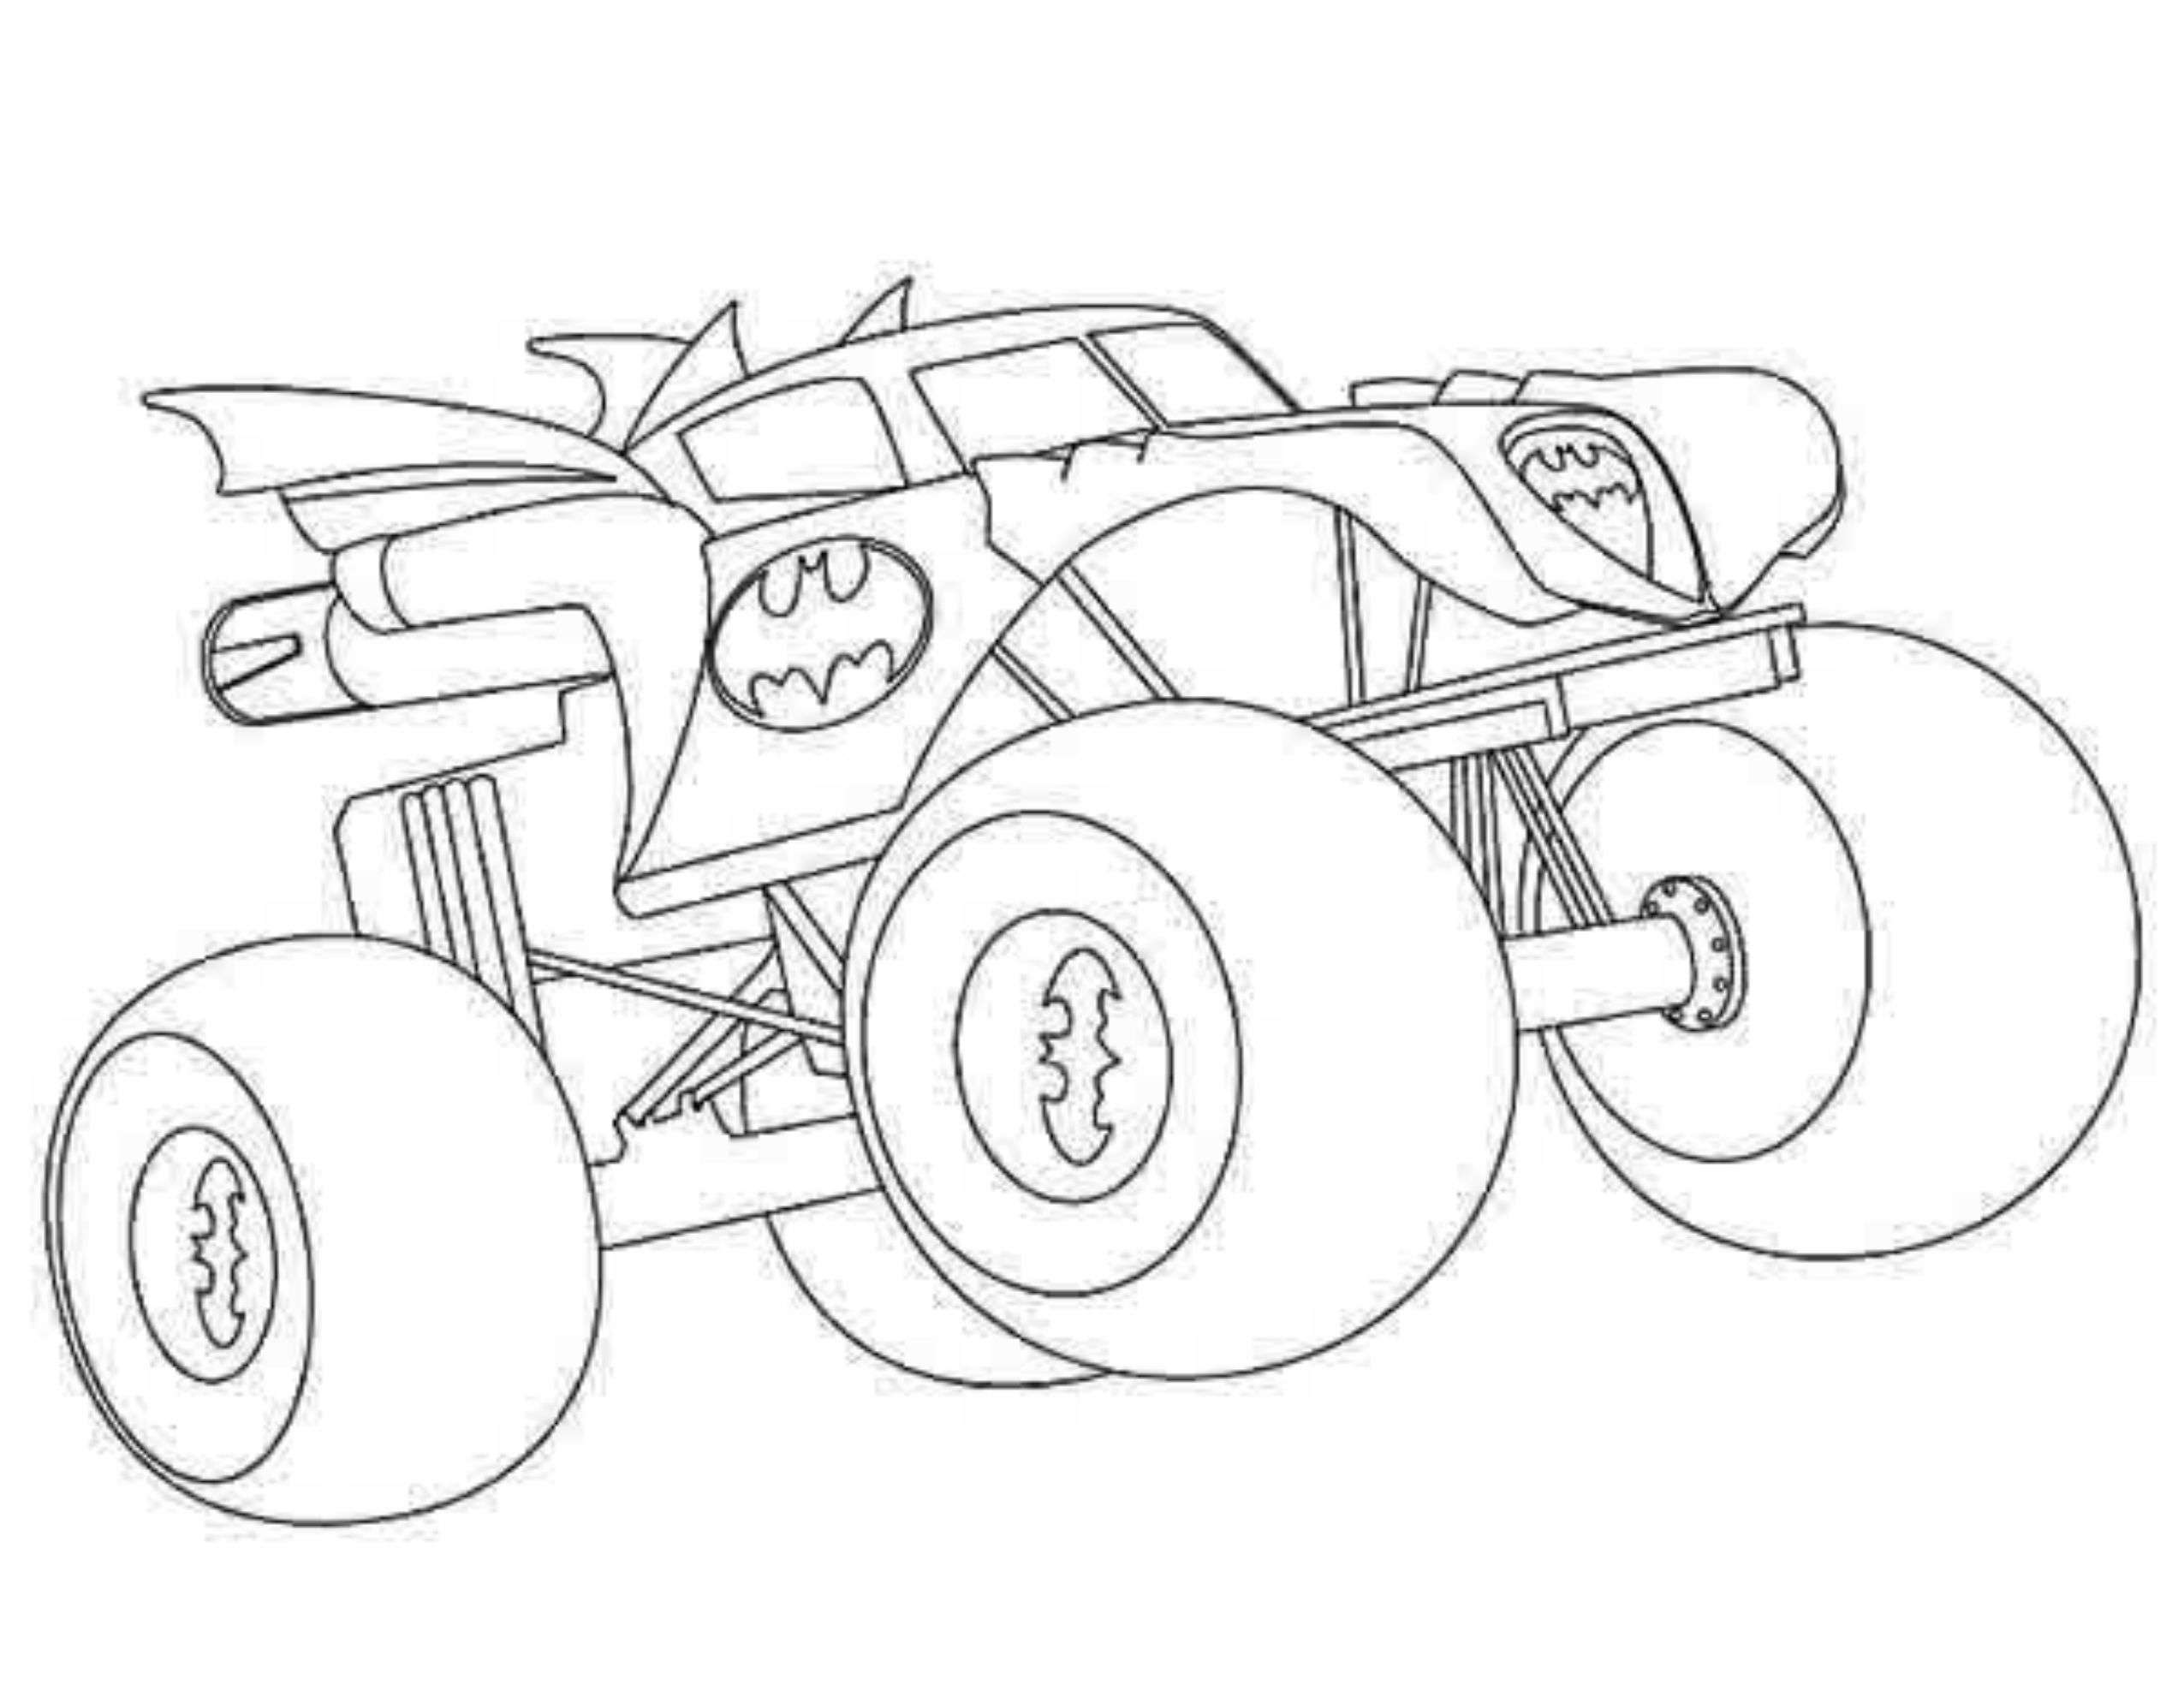 coloring pages of monster trucks monster truck coloring pages httpwwwmonsterjamcom monster of trucks pages coloring